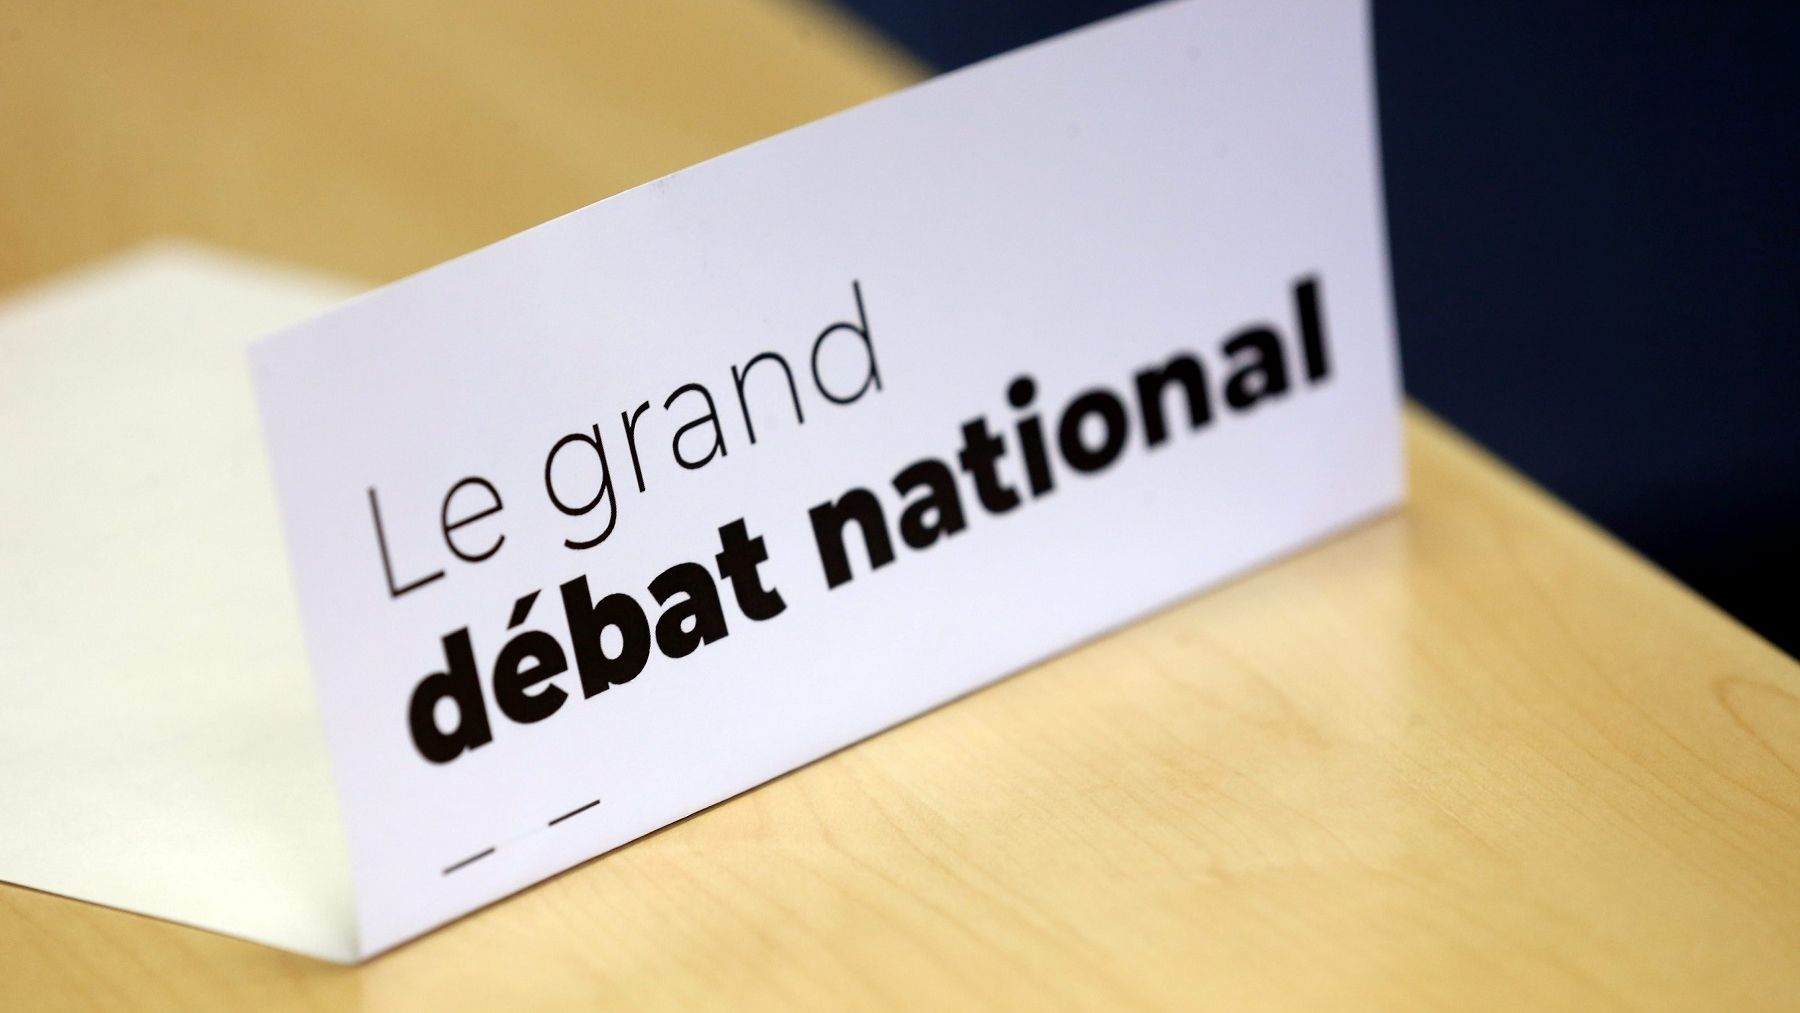 Emission spéciale grand débat national en Occitanie